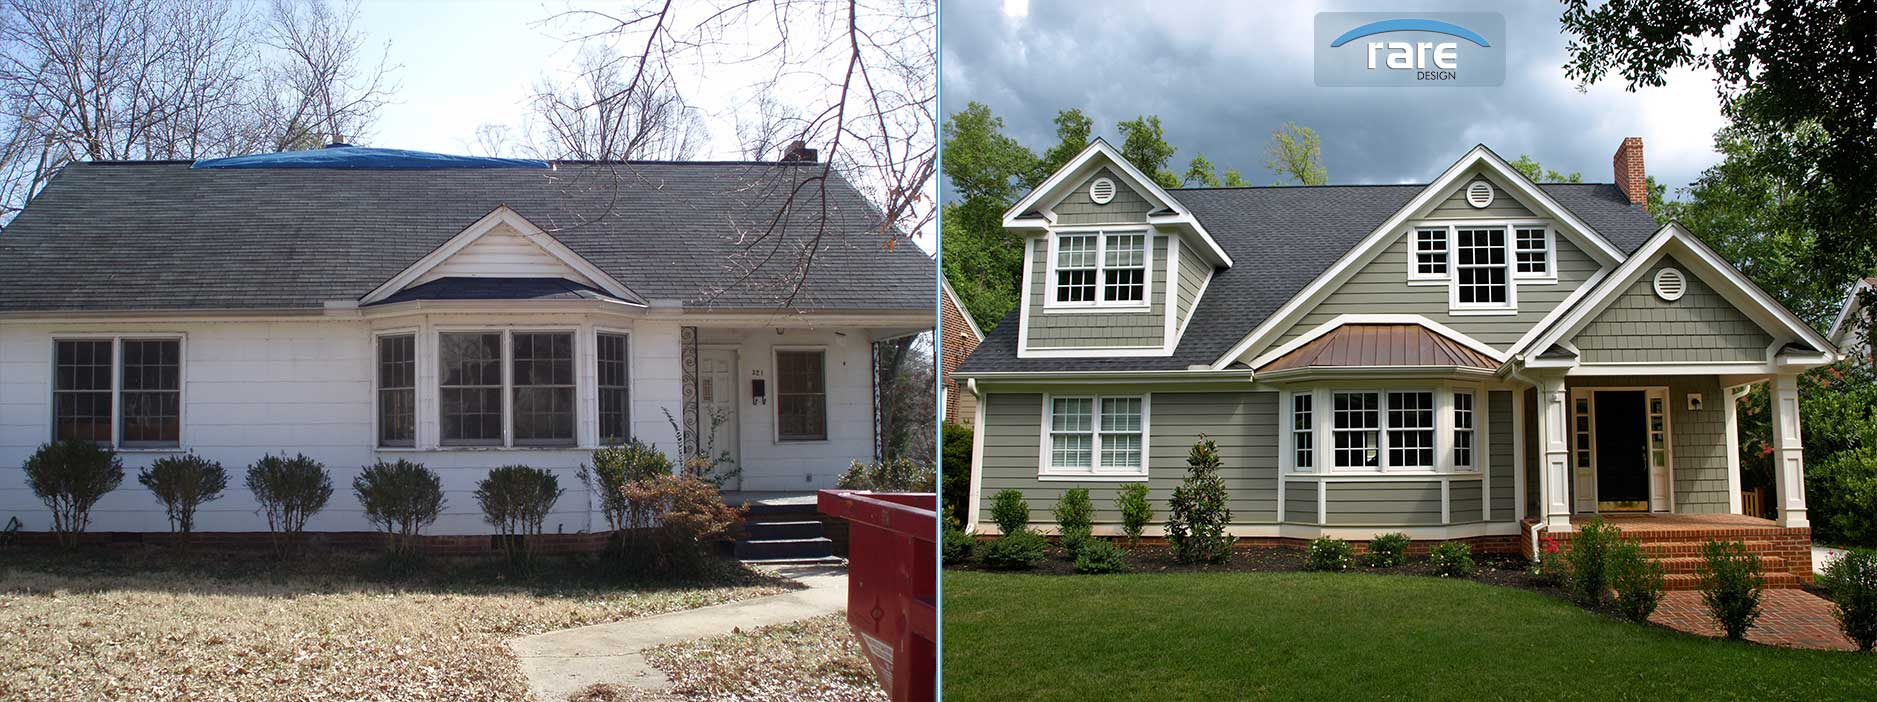 Greenville Home Remodel Rare Design Before And After Kupersmith Front Elevation: home redesign